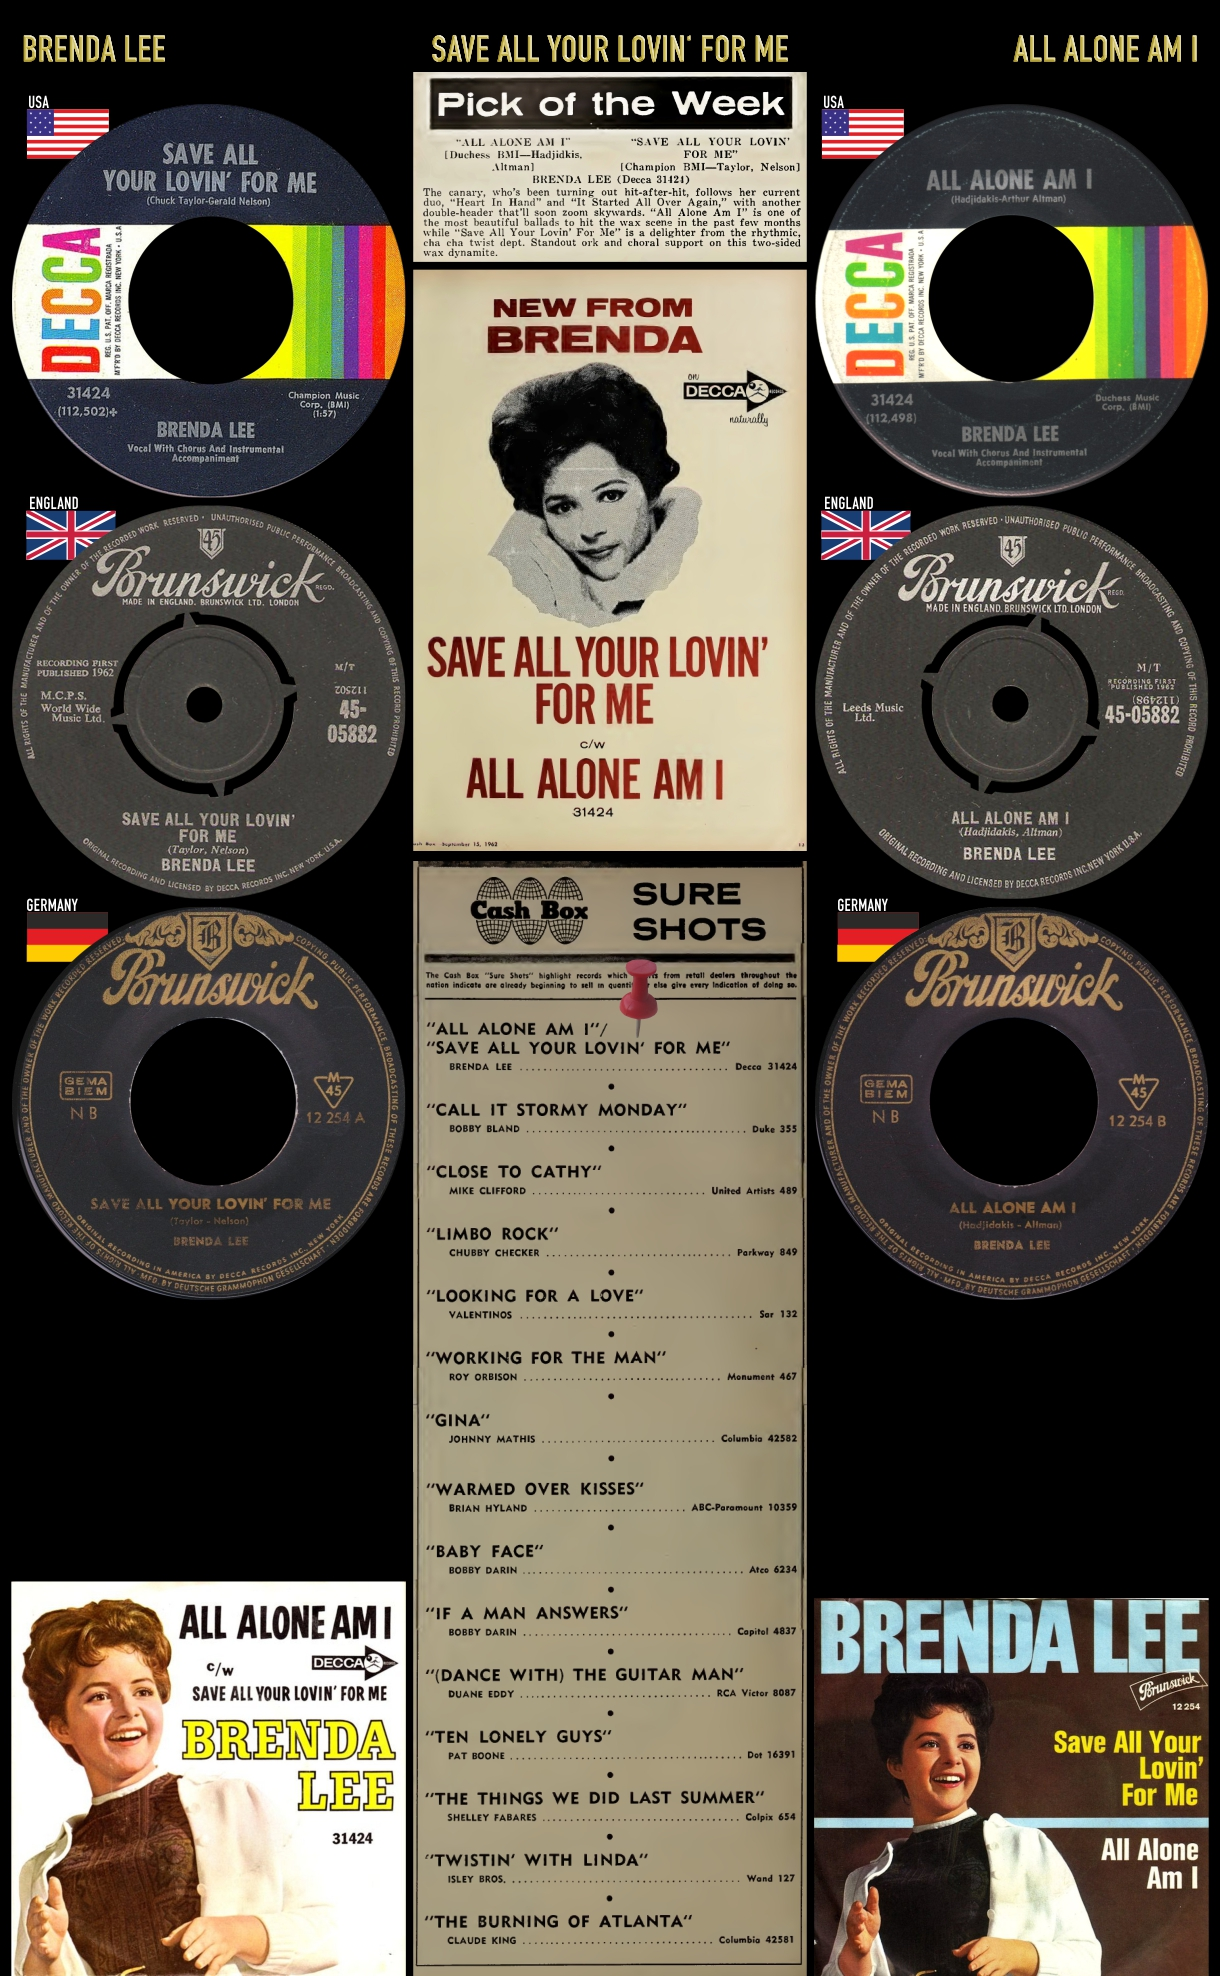 620929_Brenda Lee_All Alone Am I_Save All Your Lovin' For Me